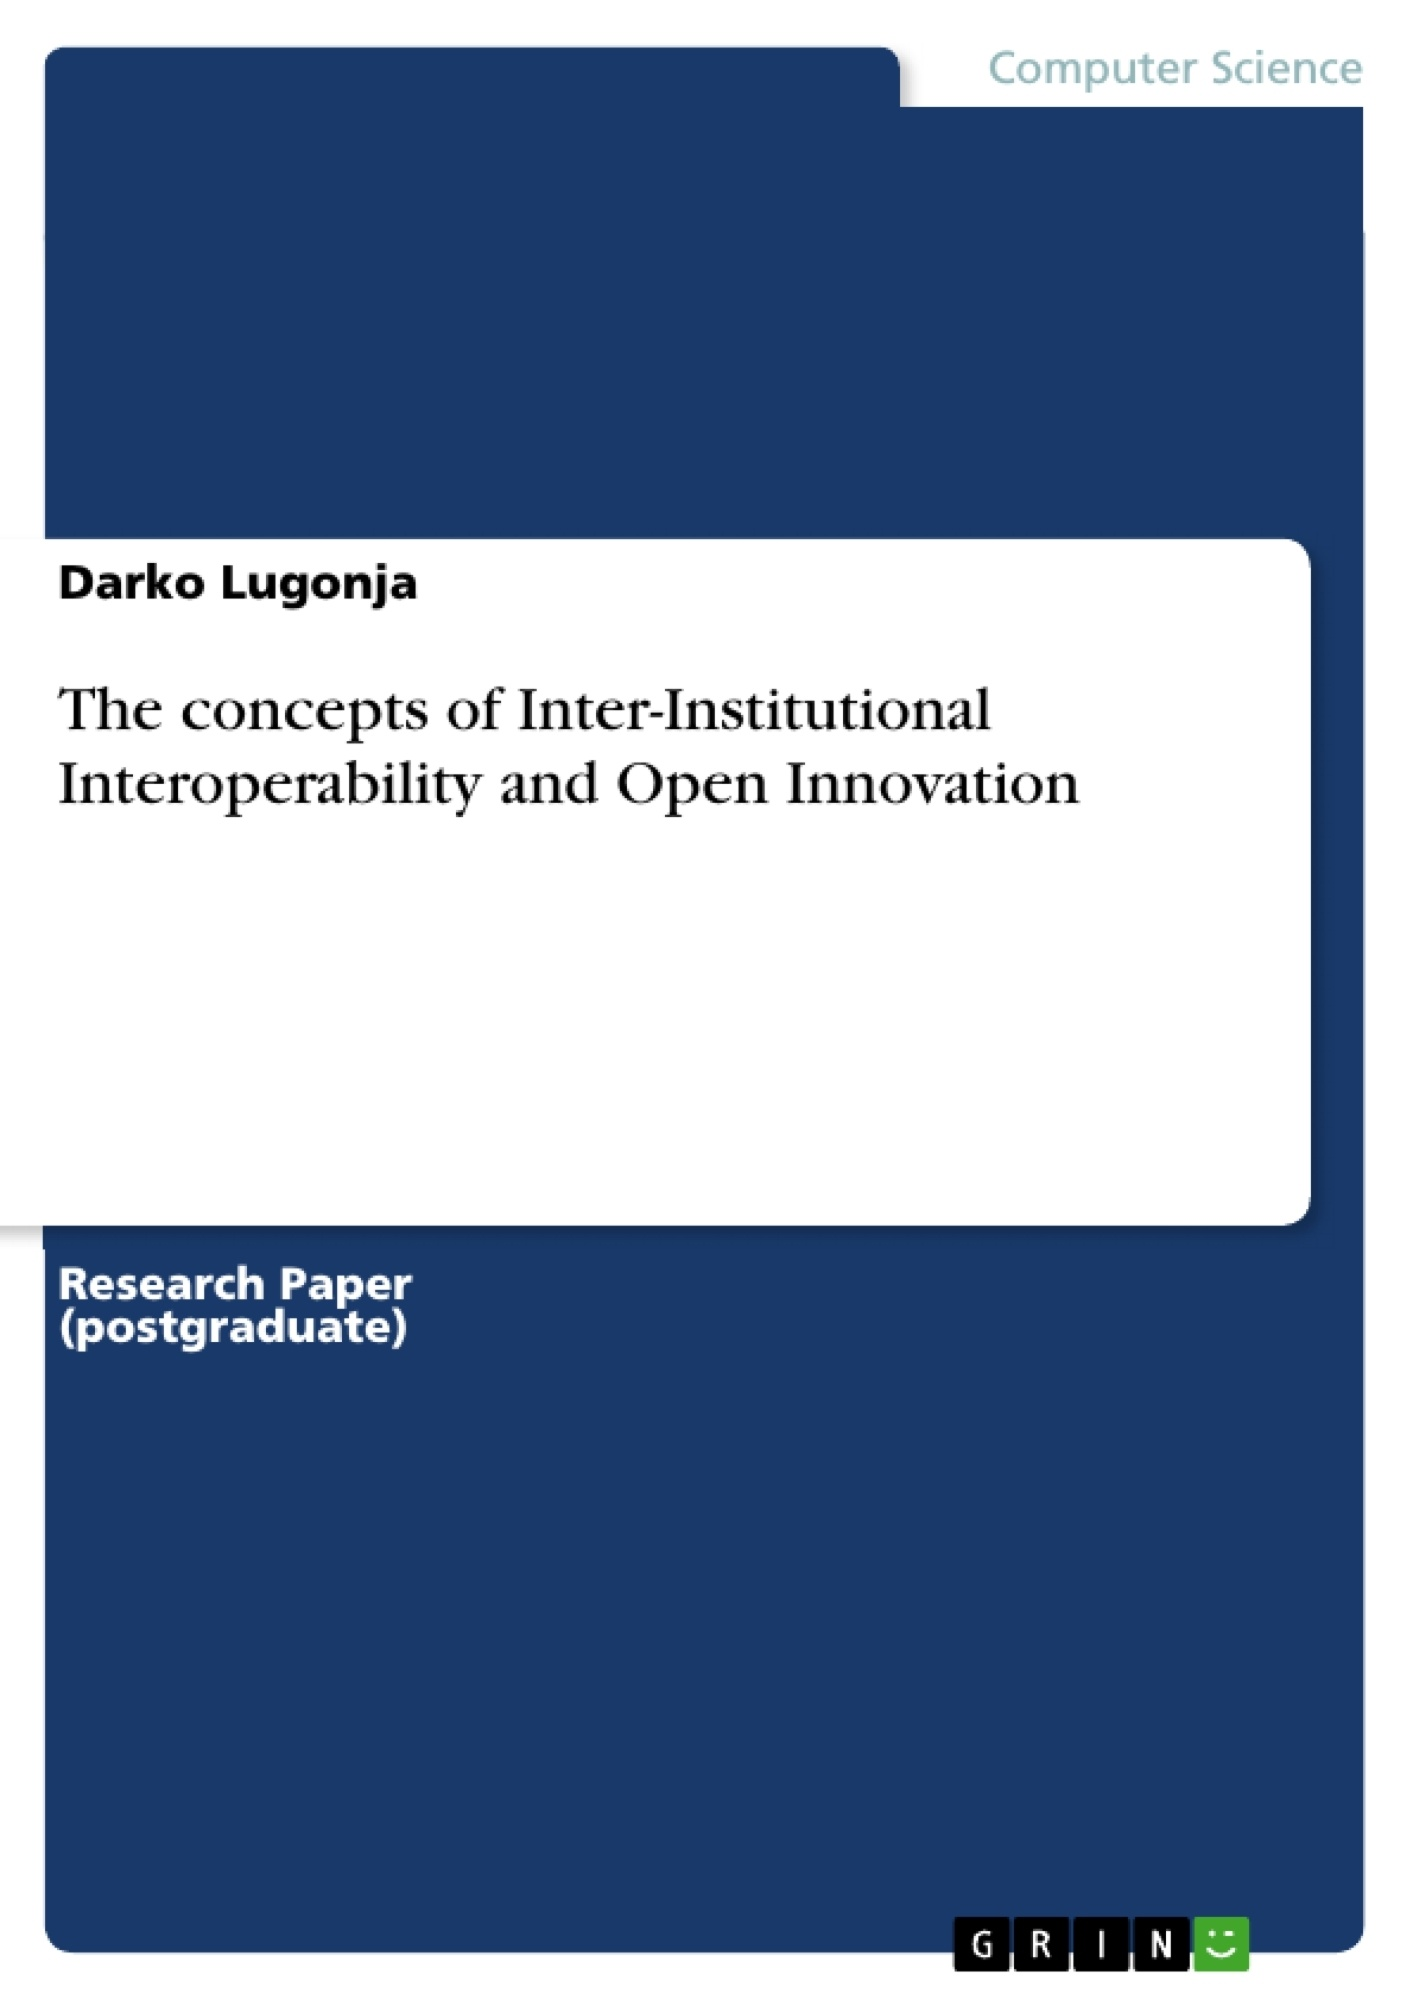 Title: The concepts of Inter-Institutional Interoperability and Open Innovation